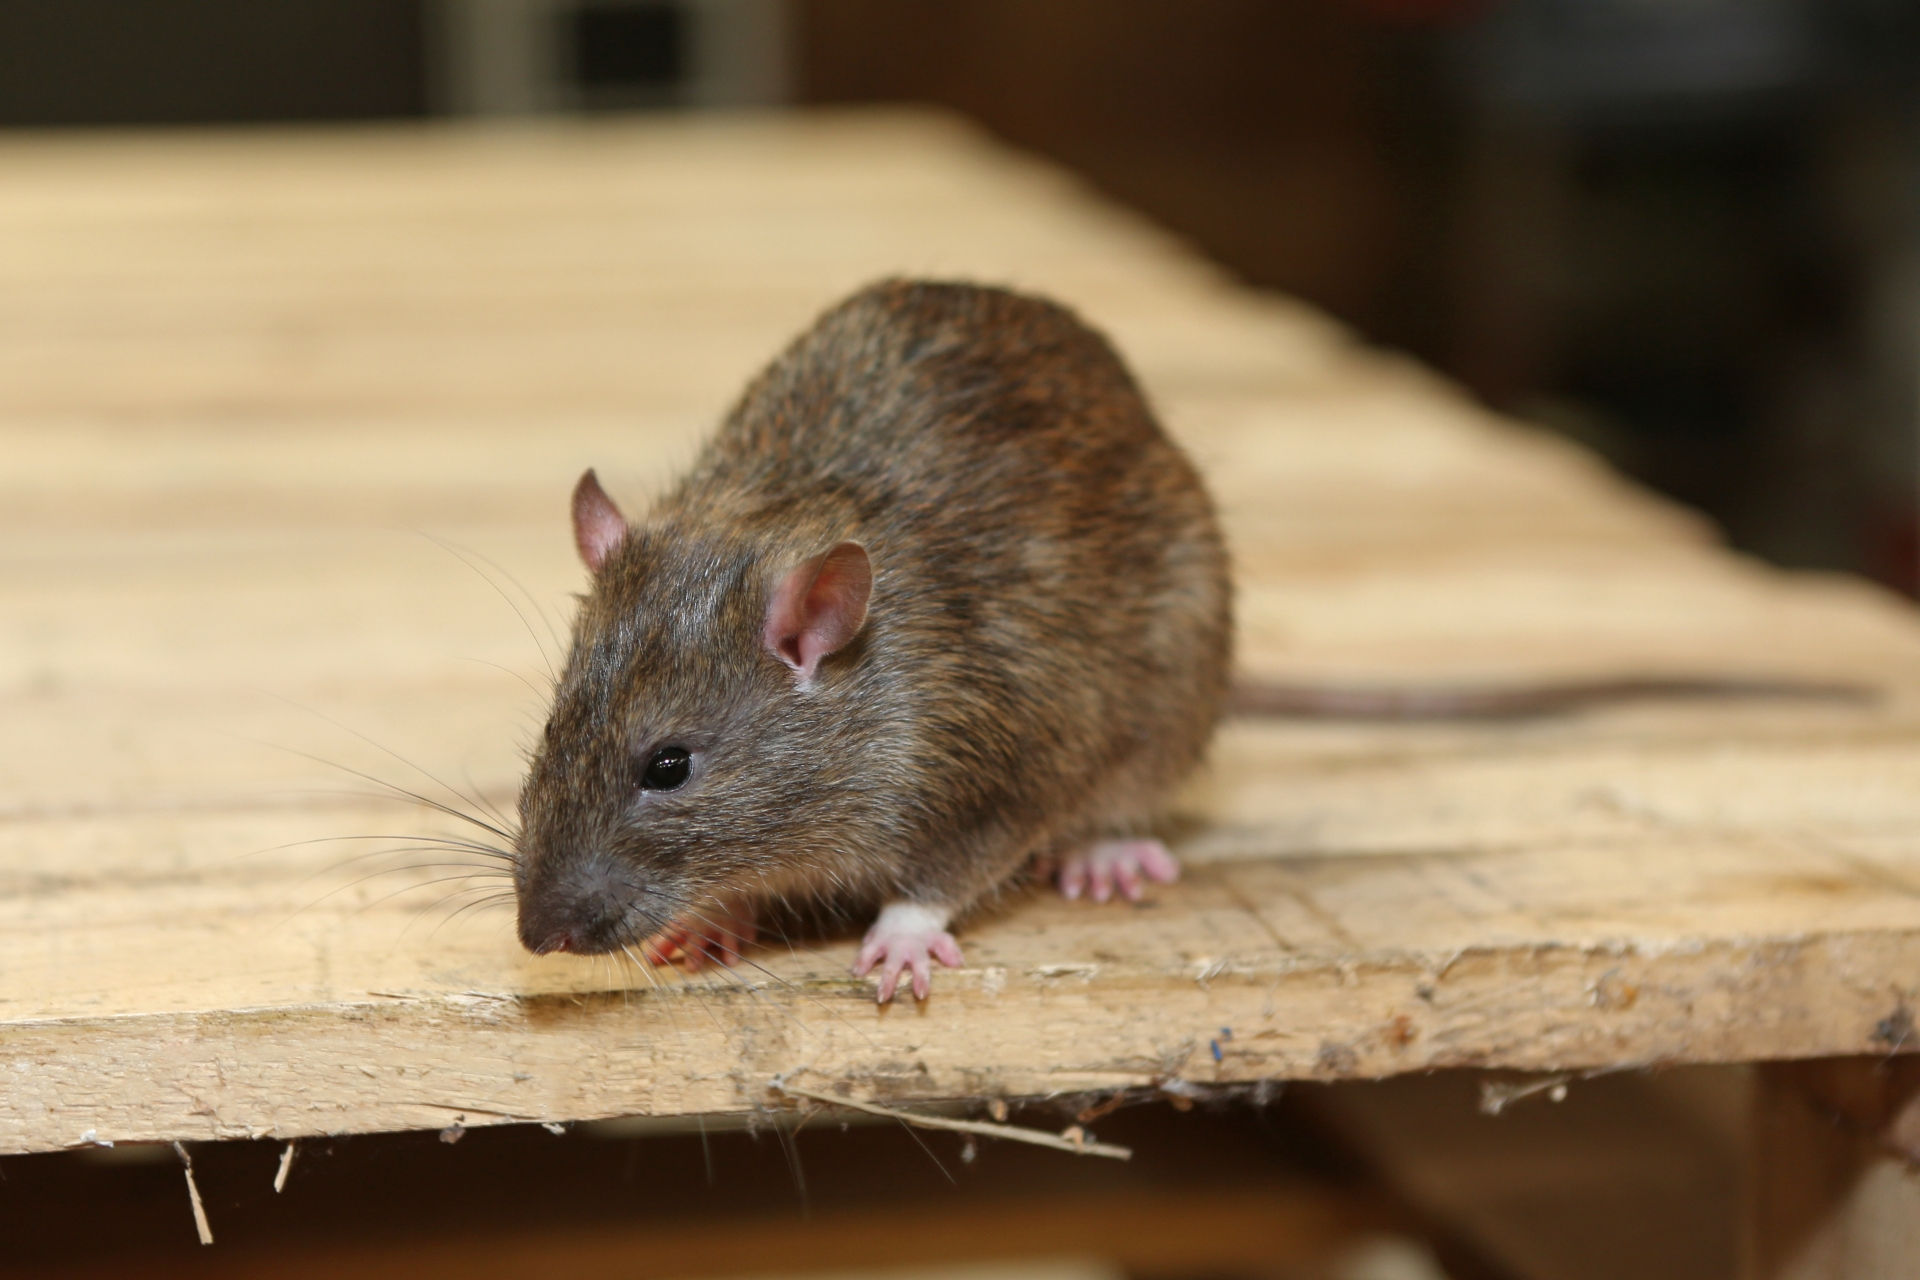 Rat Infestation, Pest Control in Heston, Osterley, TW5. Call Now 020 8166 9746